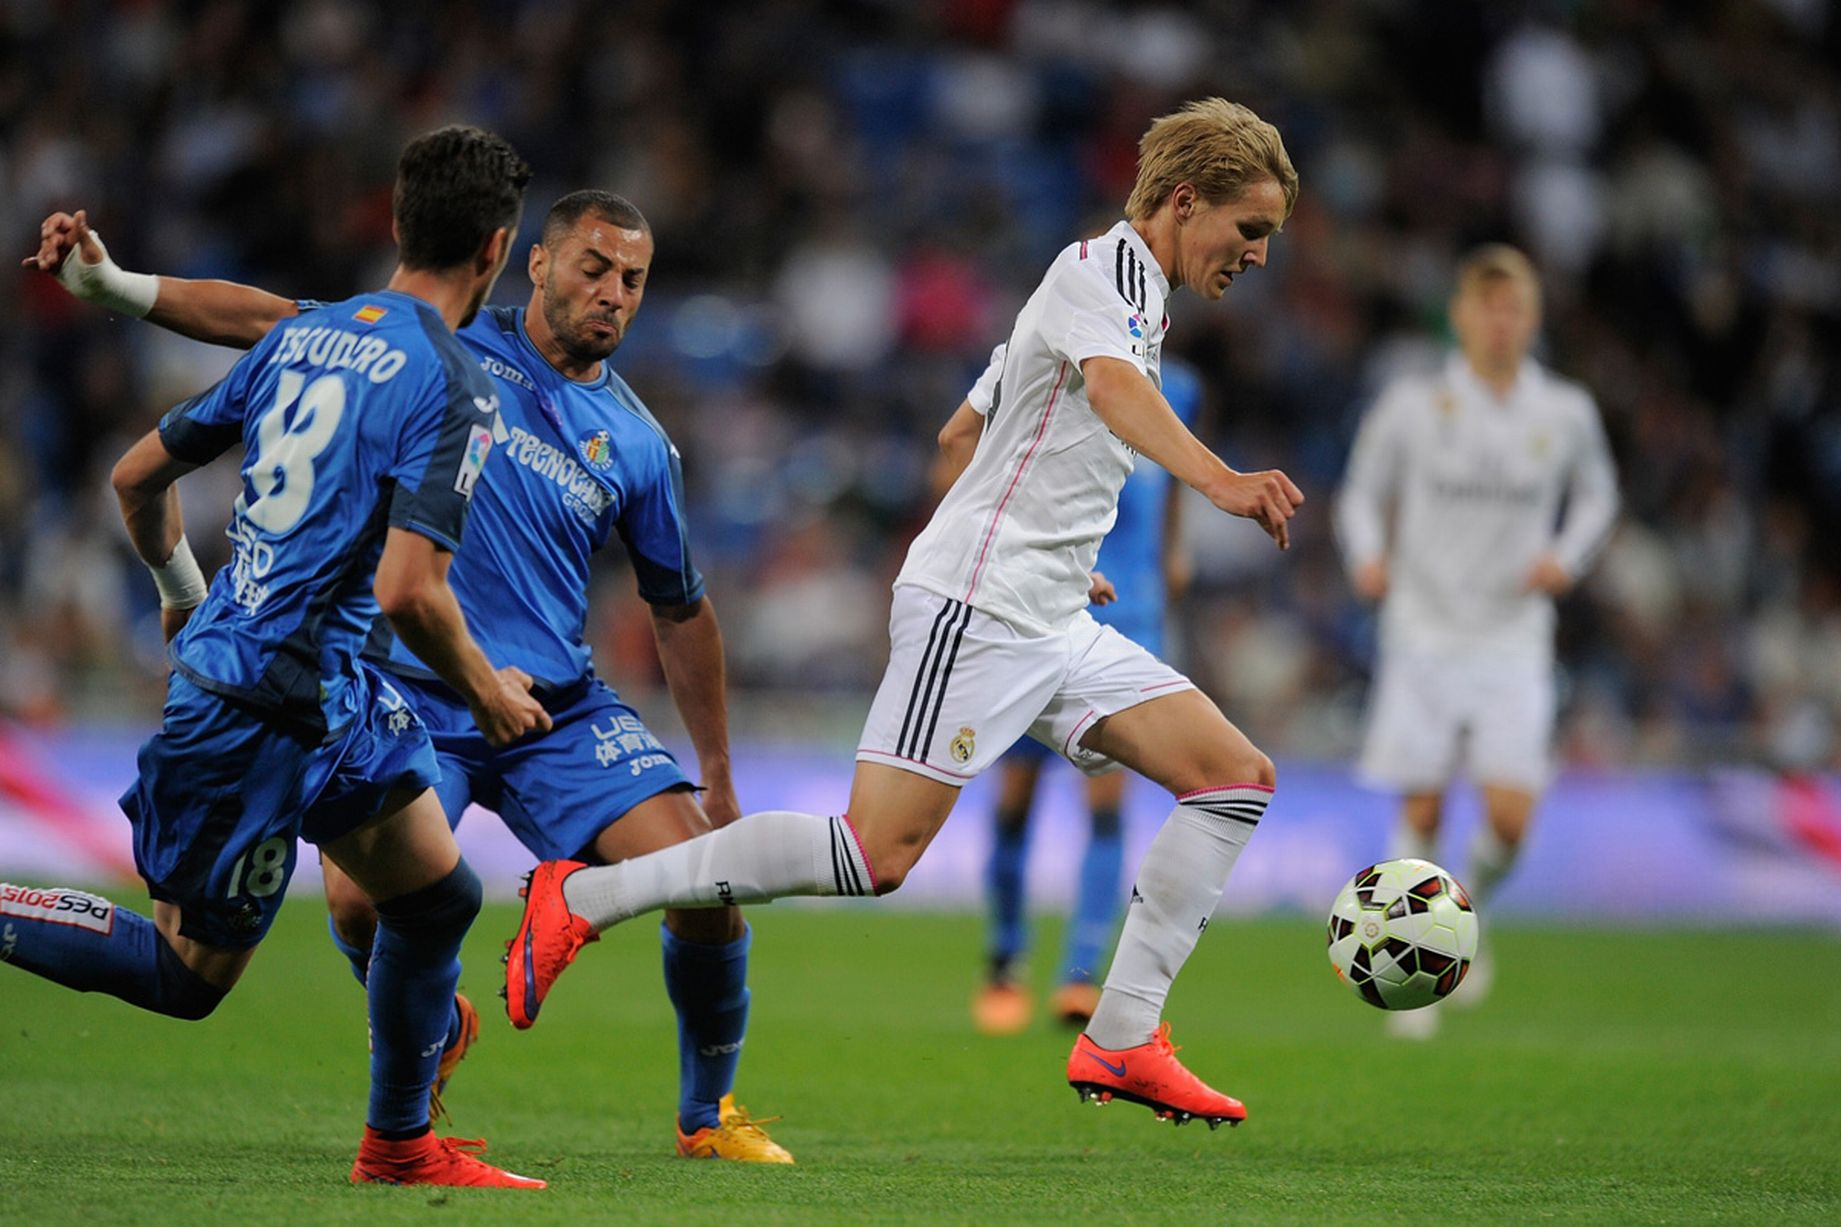 Real Madrid Vs Getafe Cf: Real Madrid 7-3 Getafe: 5 Talking Points